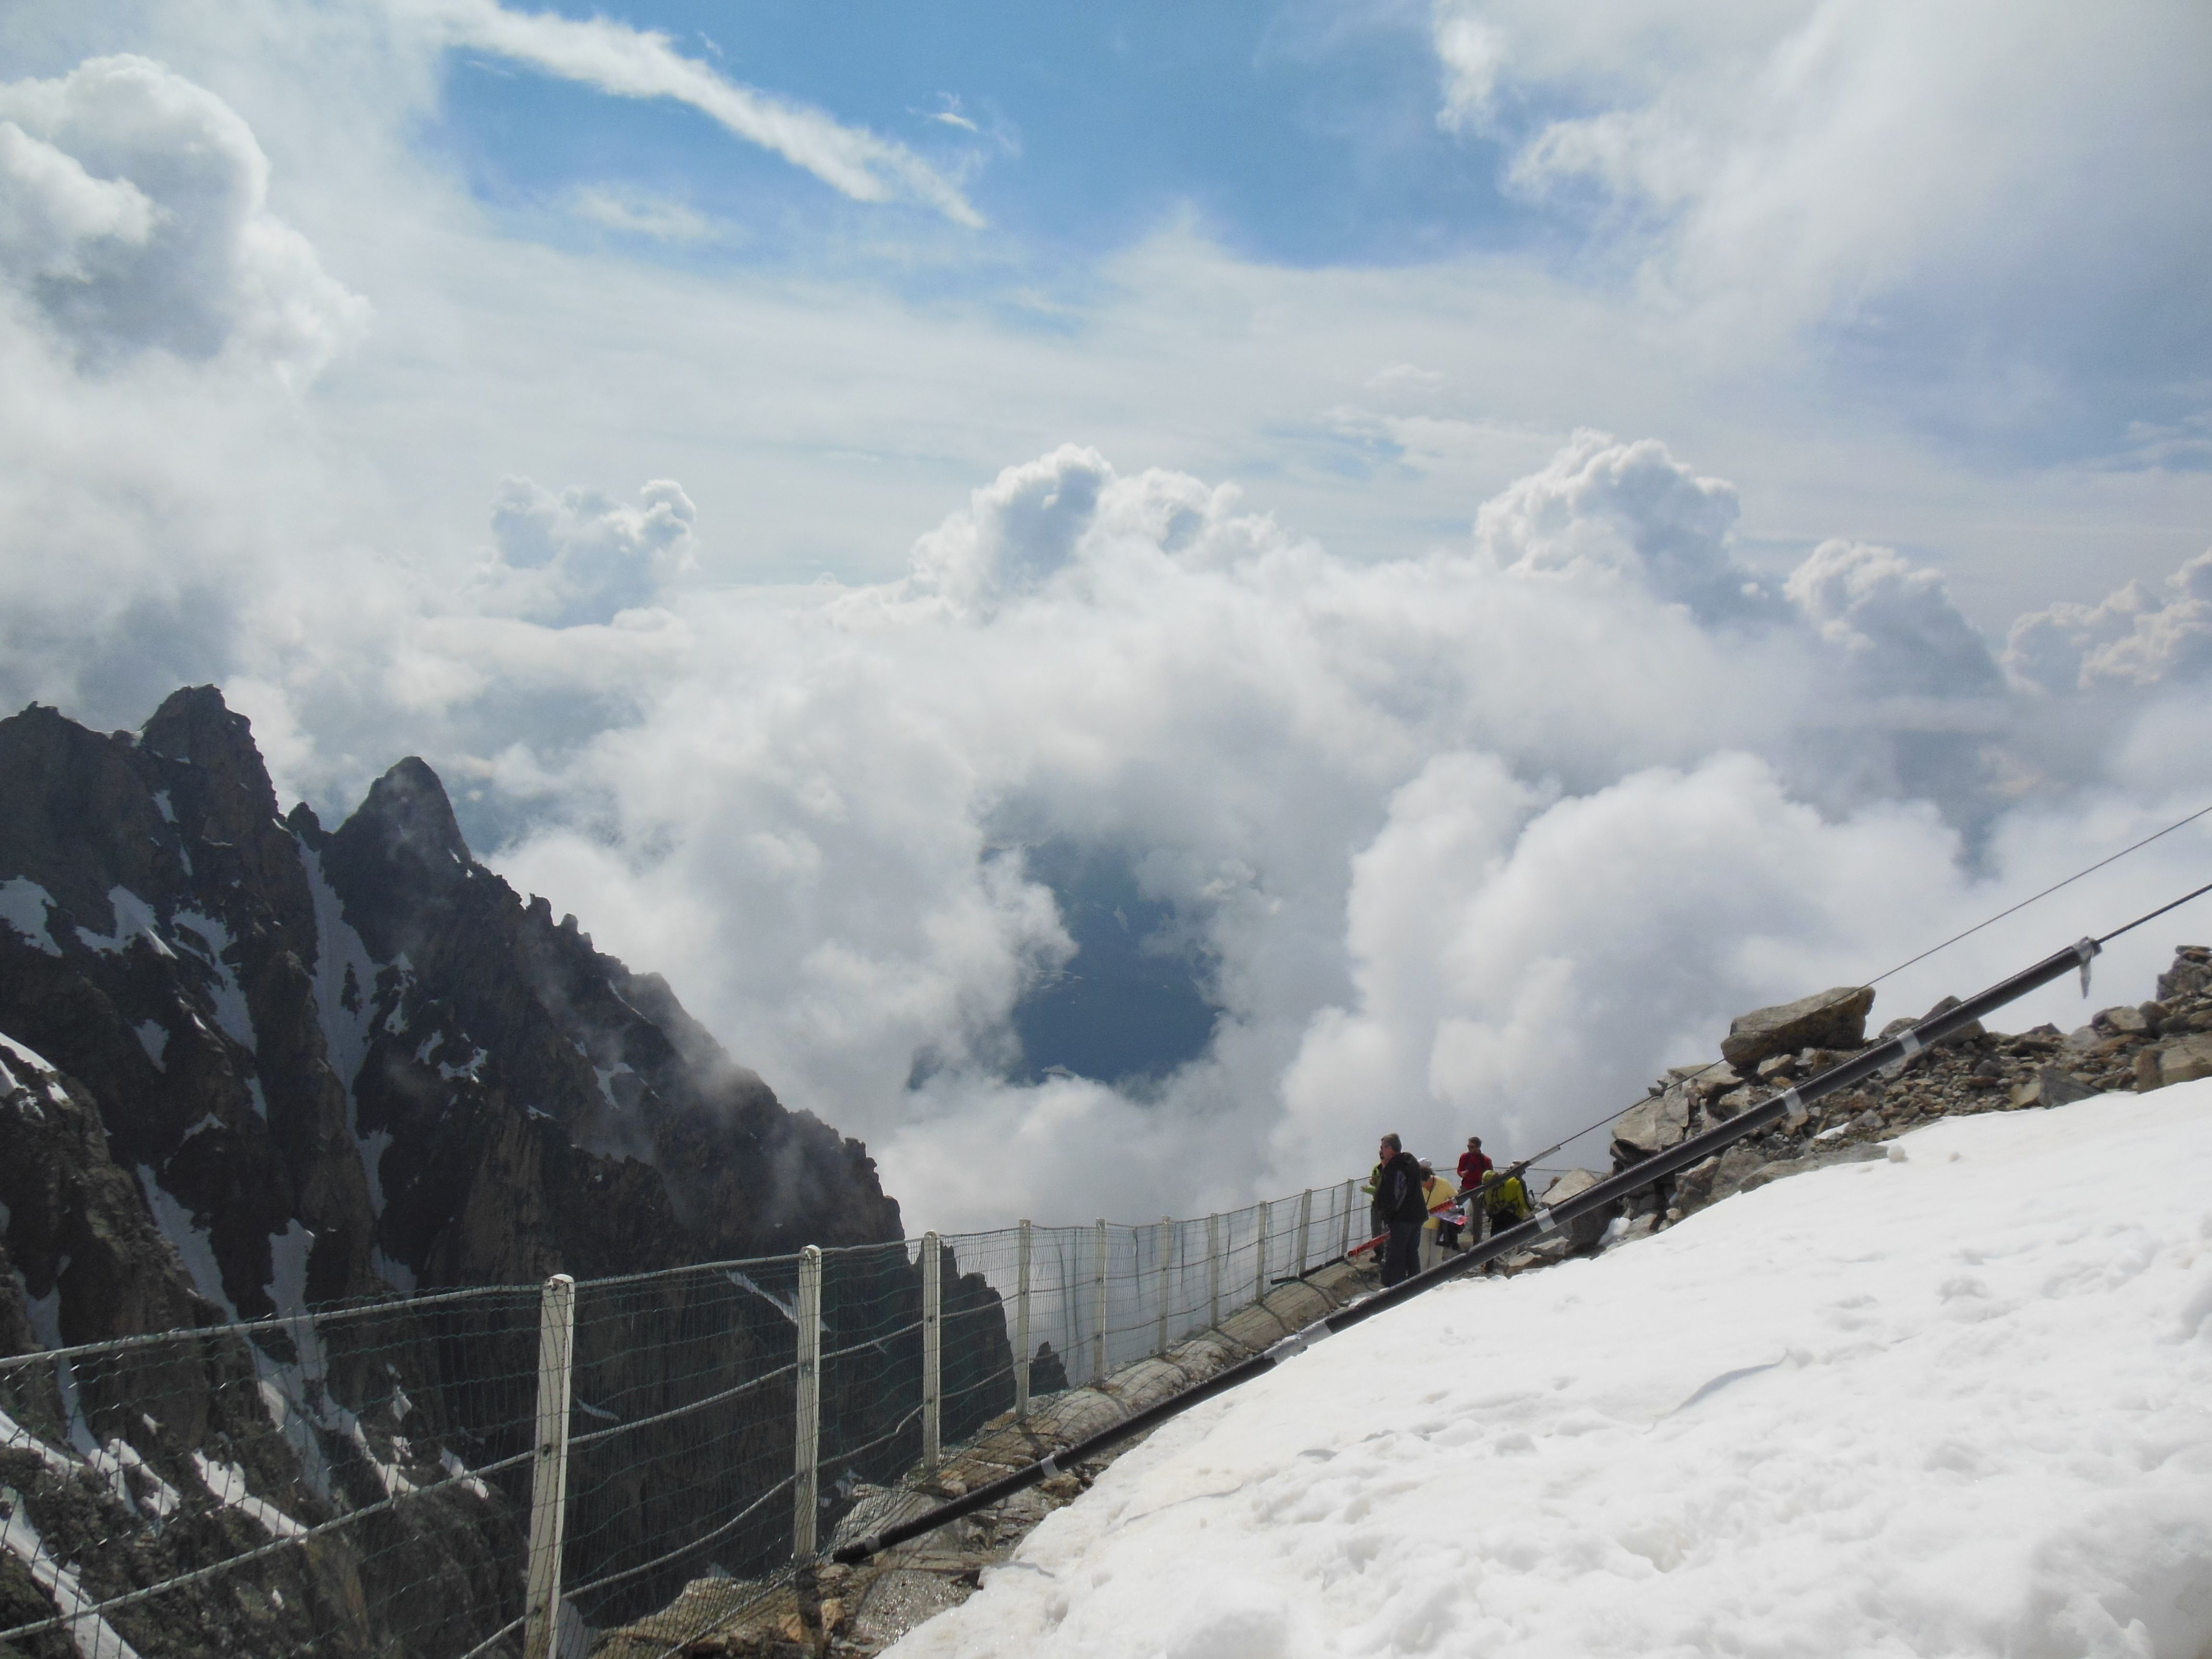 view from the top of Mont Blanc, highest mountain in the Alps